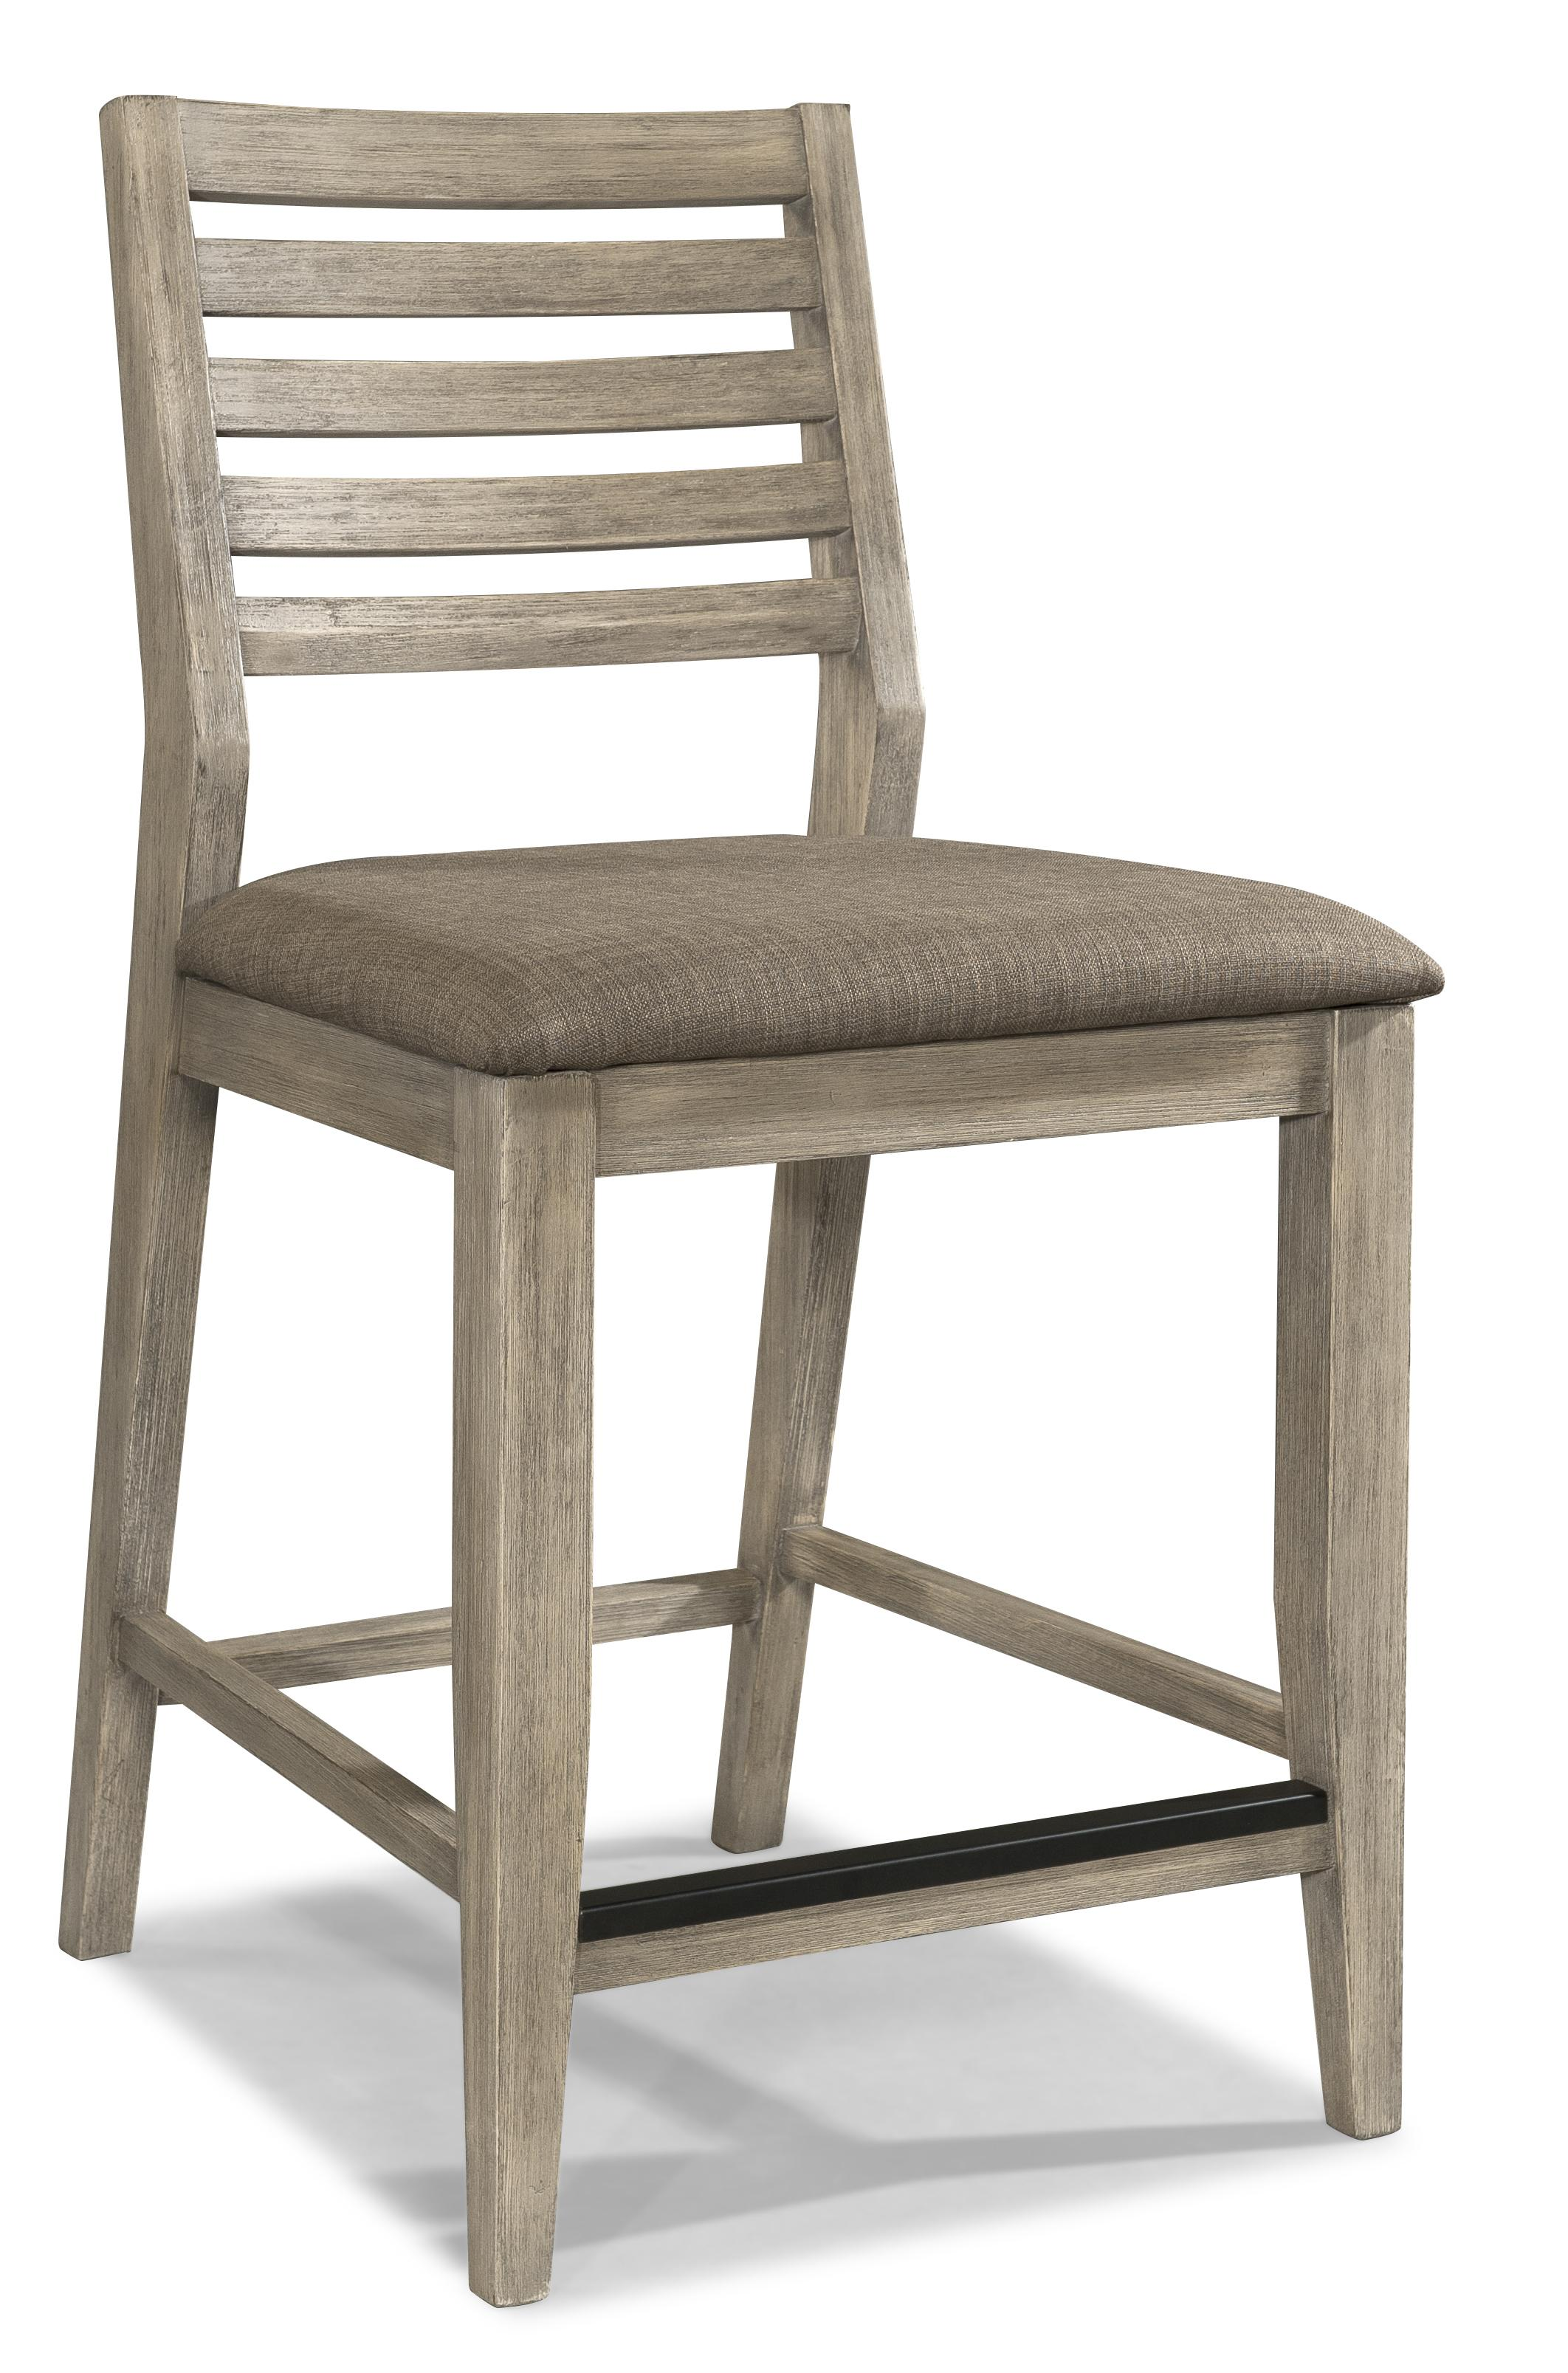 Corliss Landing Counter Stool at Williams & Kay